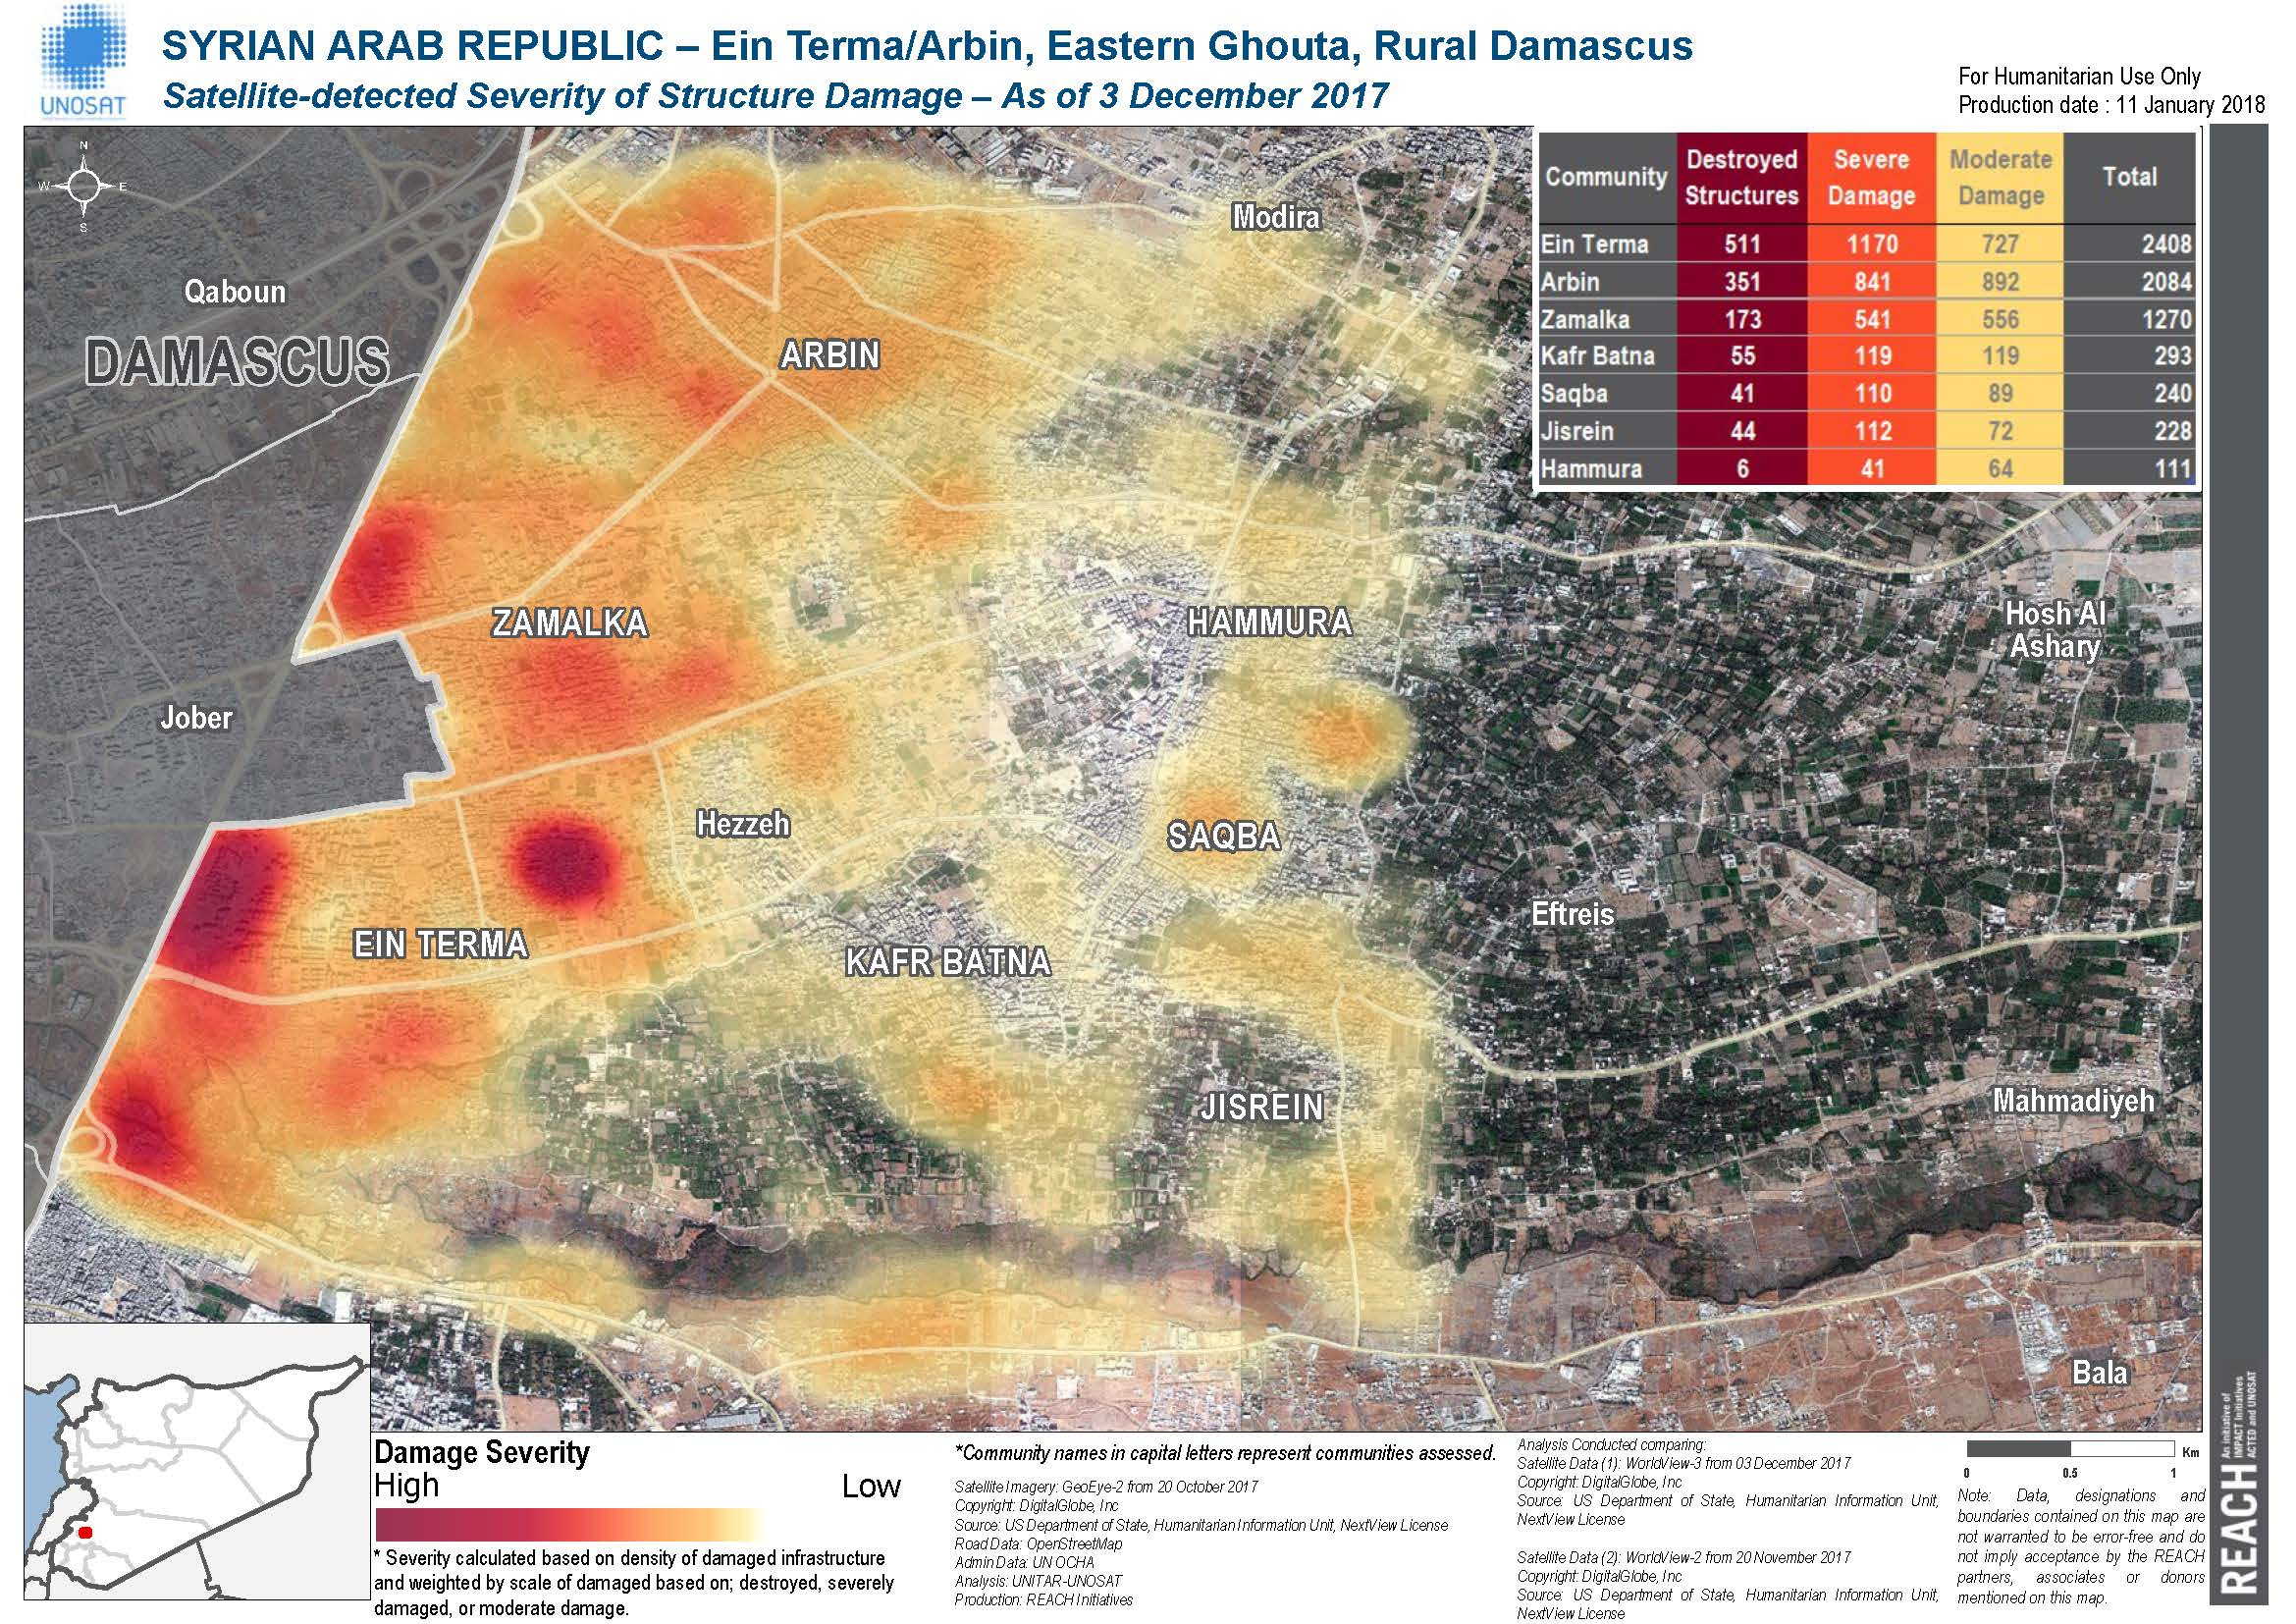 Analysis of damaged structures as of 3 December 2017 in the Ein Terma/Arbin area of Eastern Ghouta. ©REACH/2017